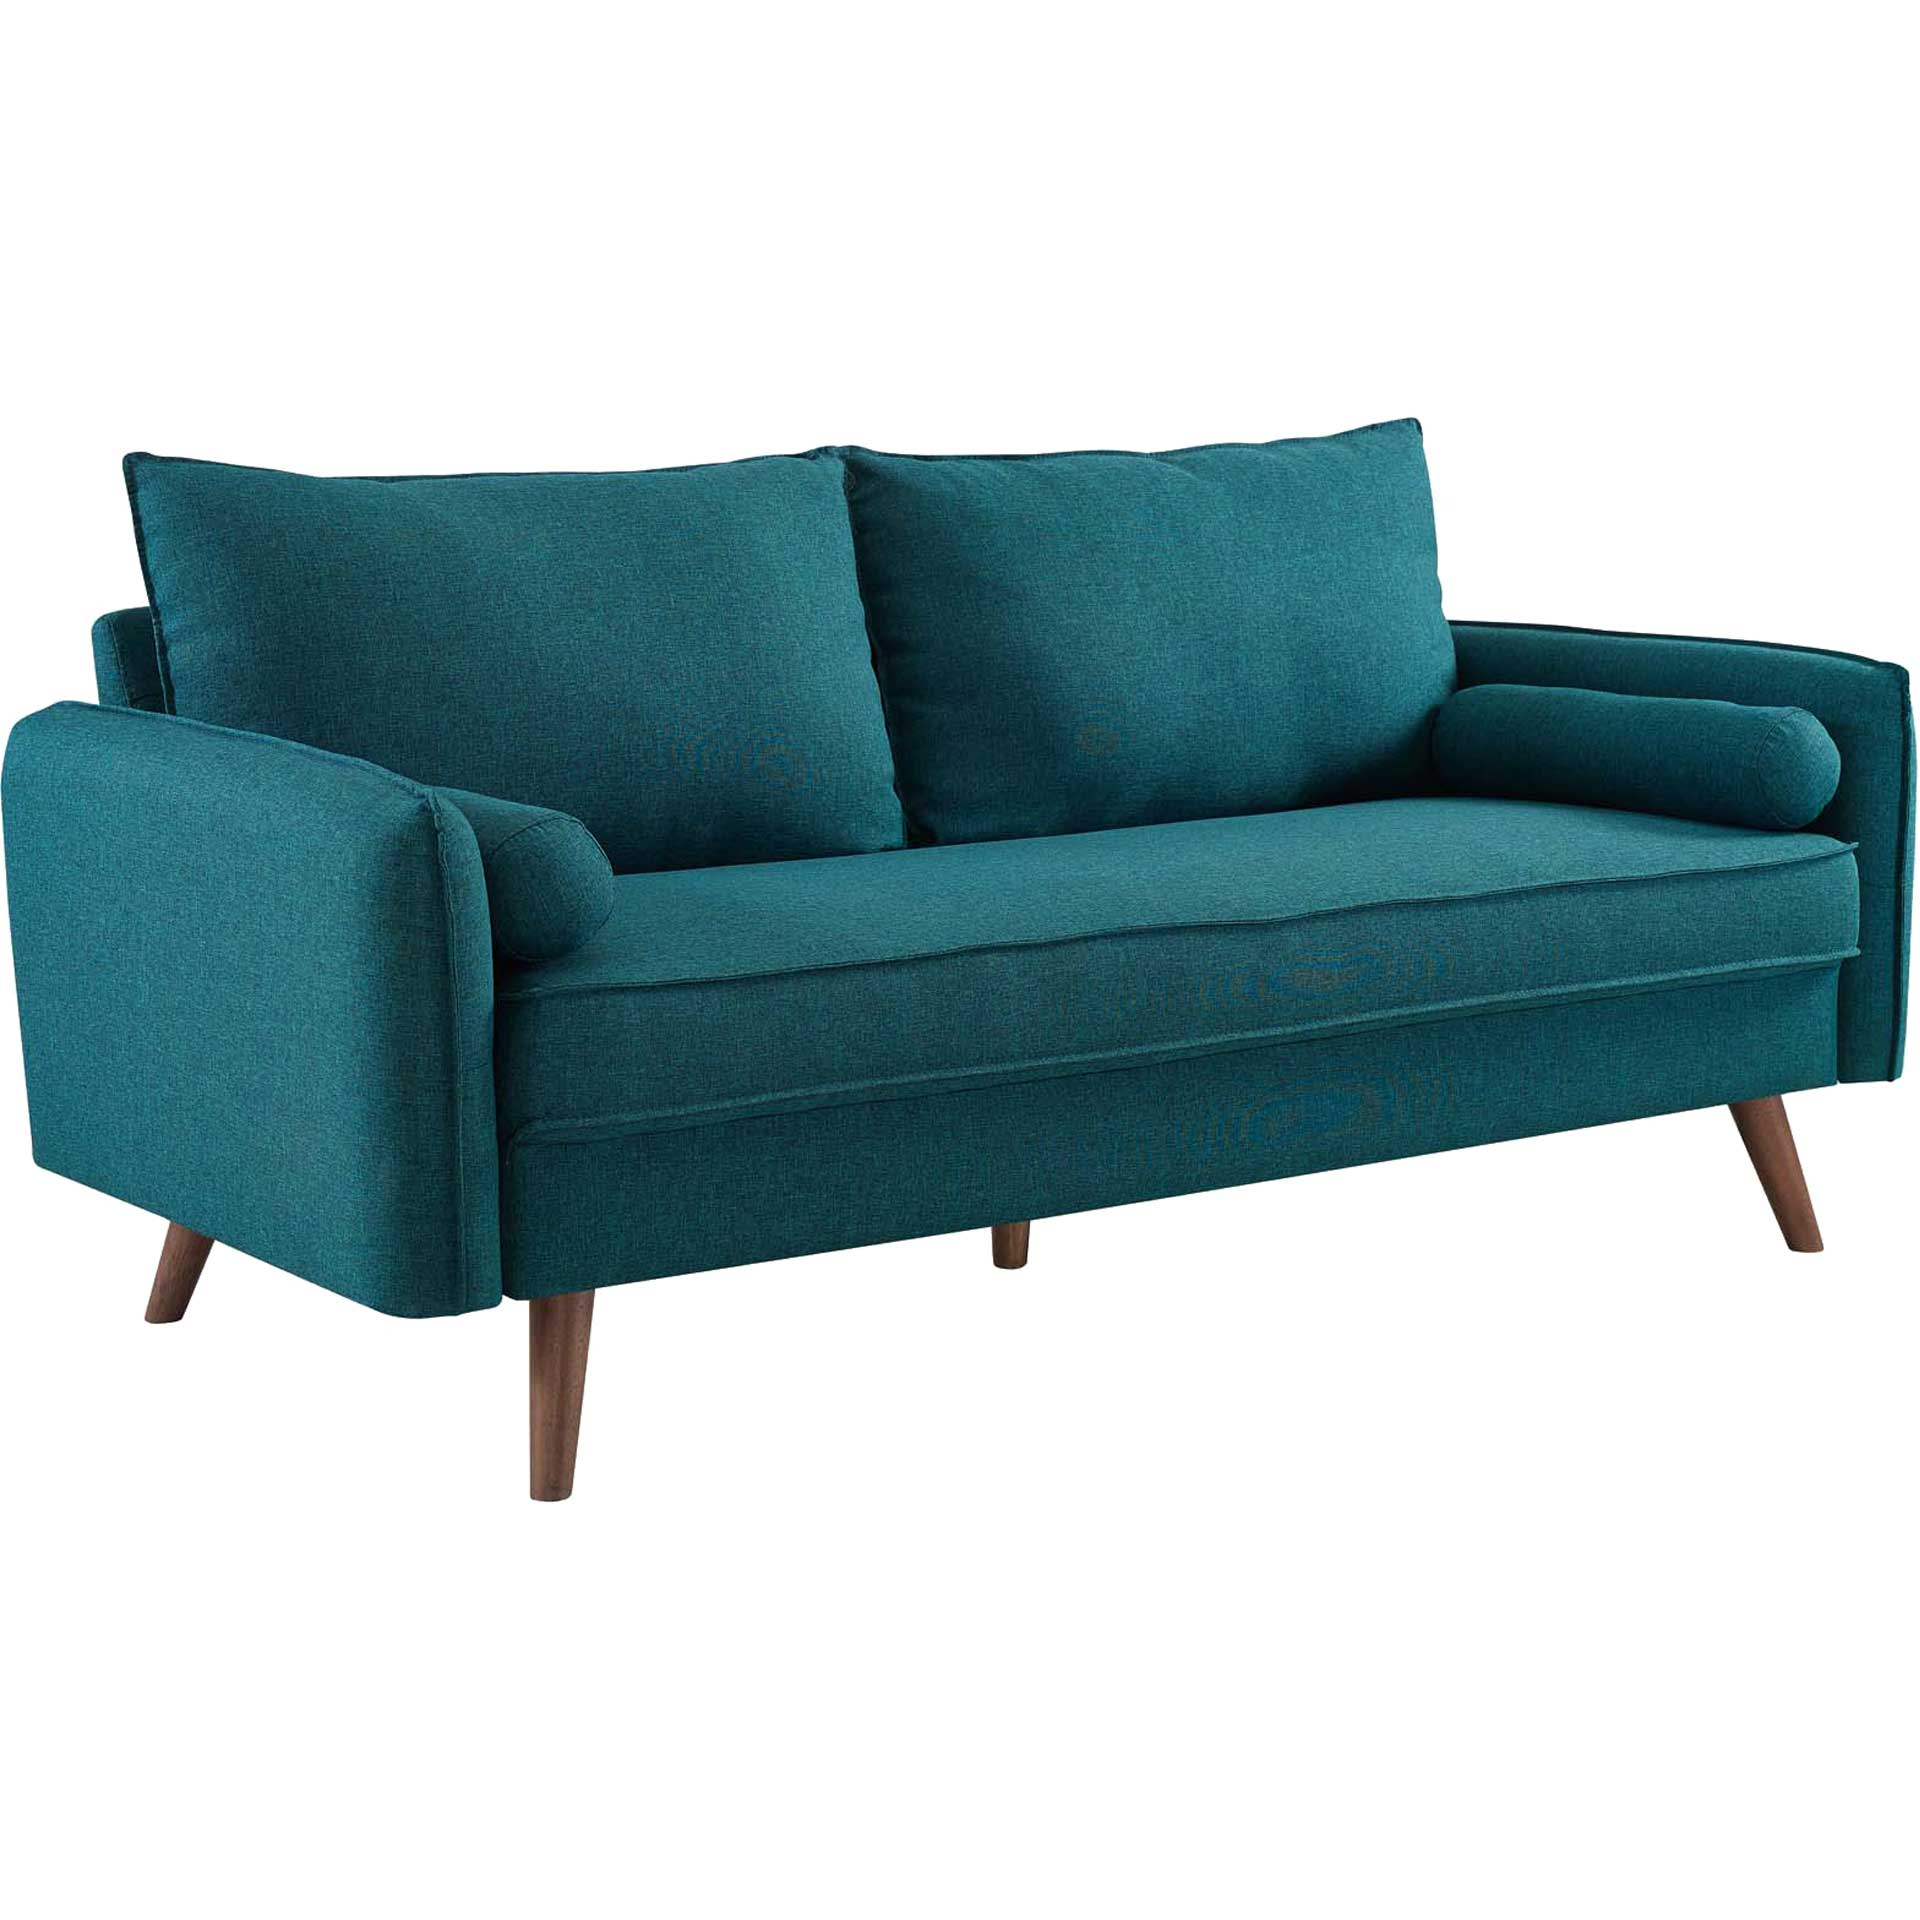 Raylee Upholstered Fabric Sofa Teal